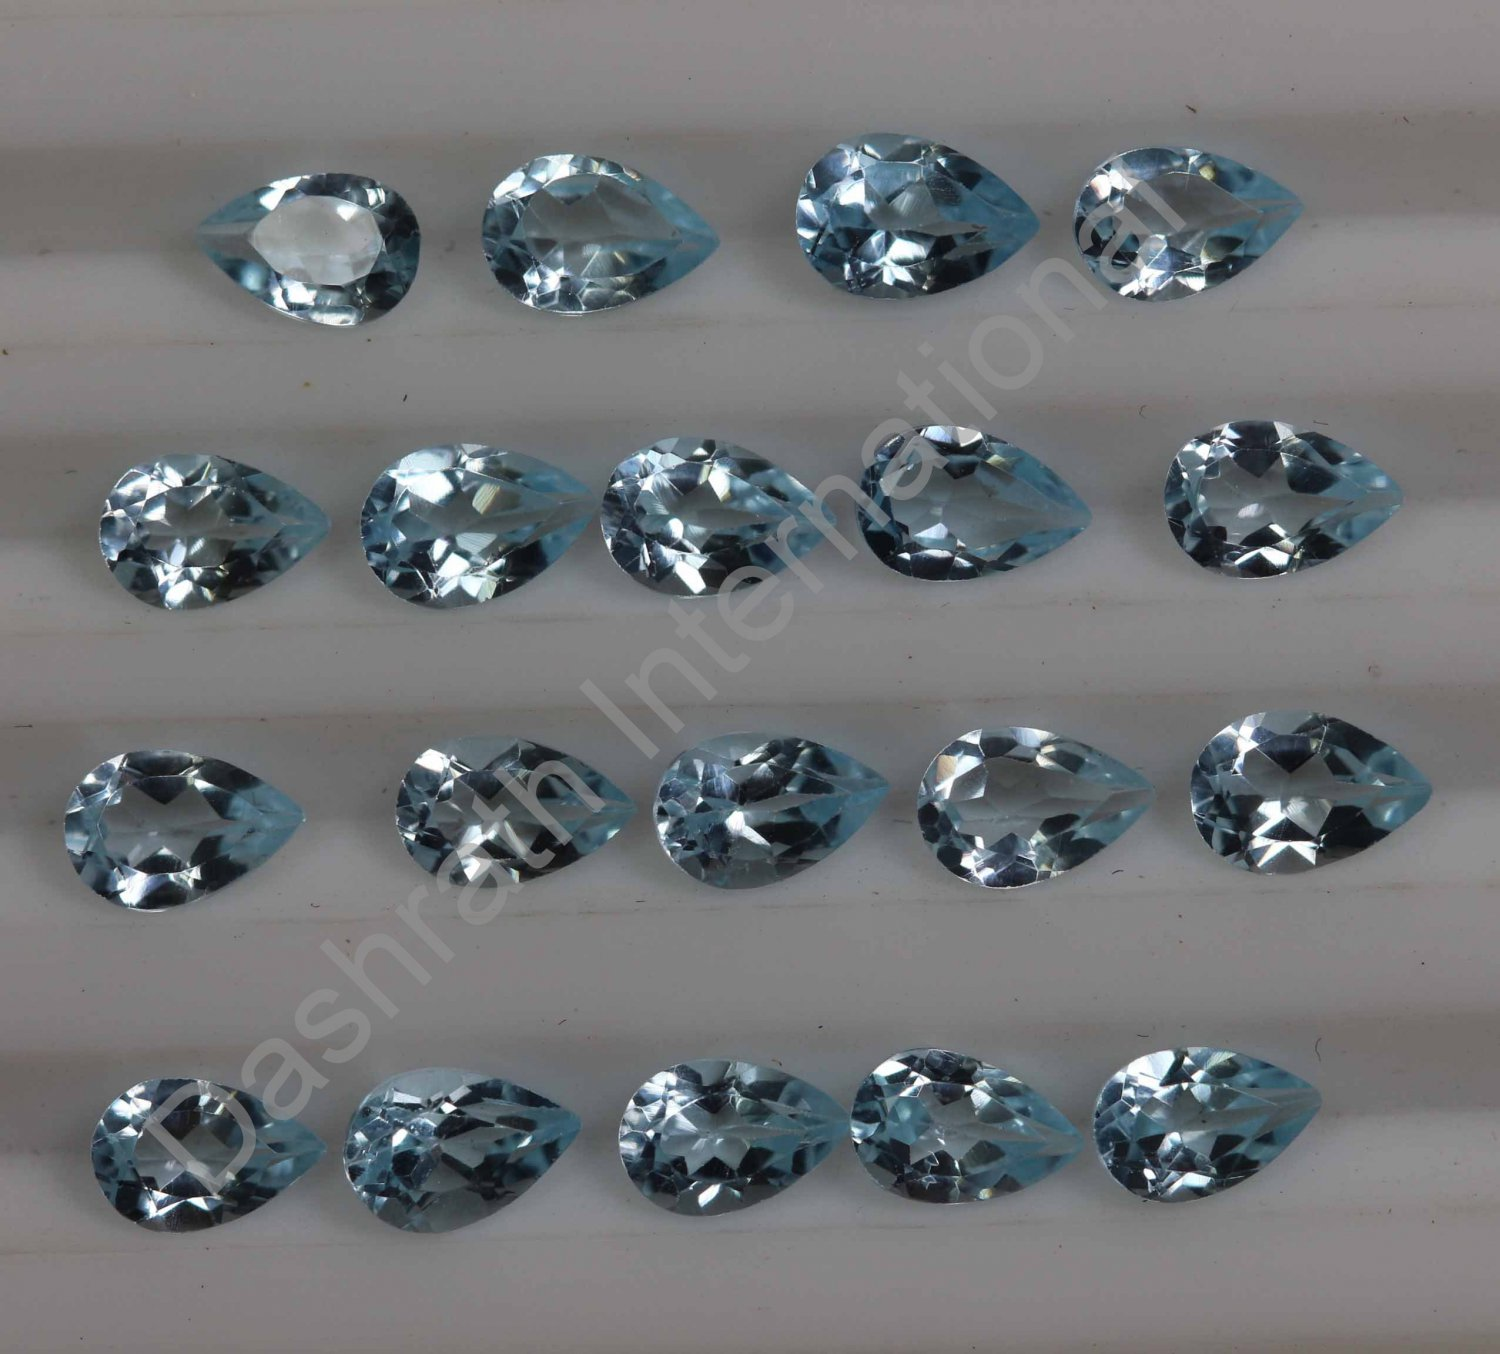 5x3mm  Natural Sky Blue Topaz Faceted Cut Pear 25 Pieces Lot  Top Quality Loose Gemstone